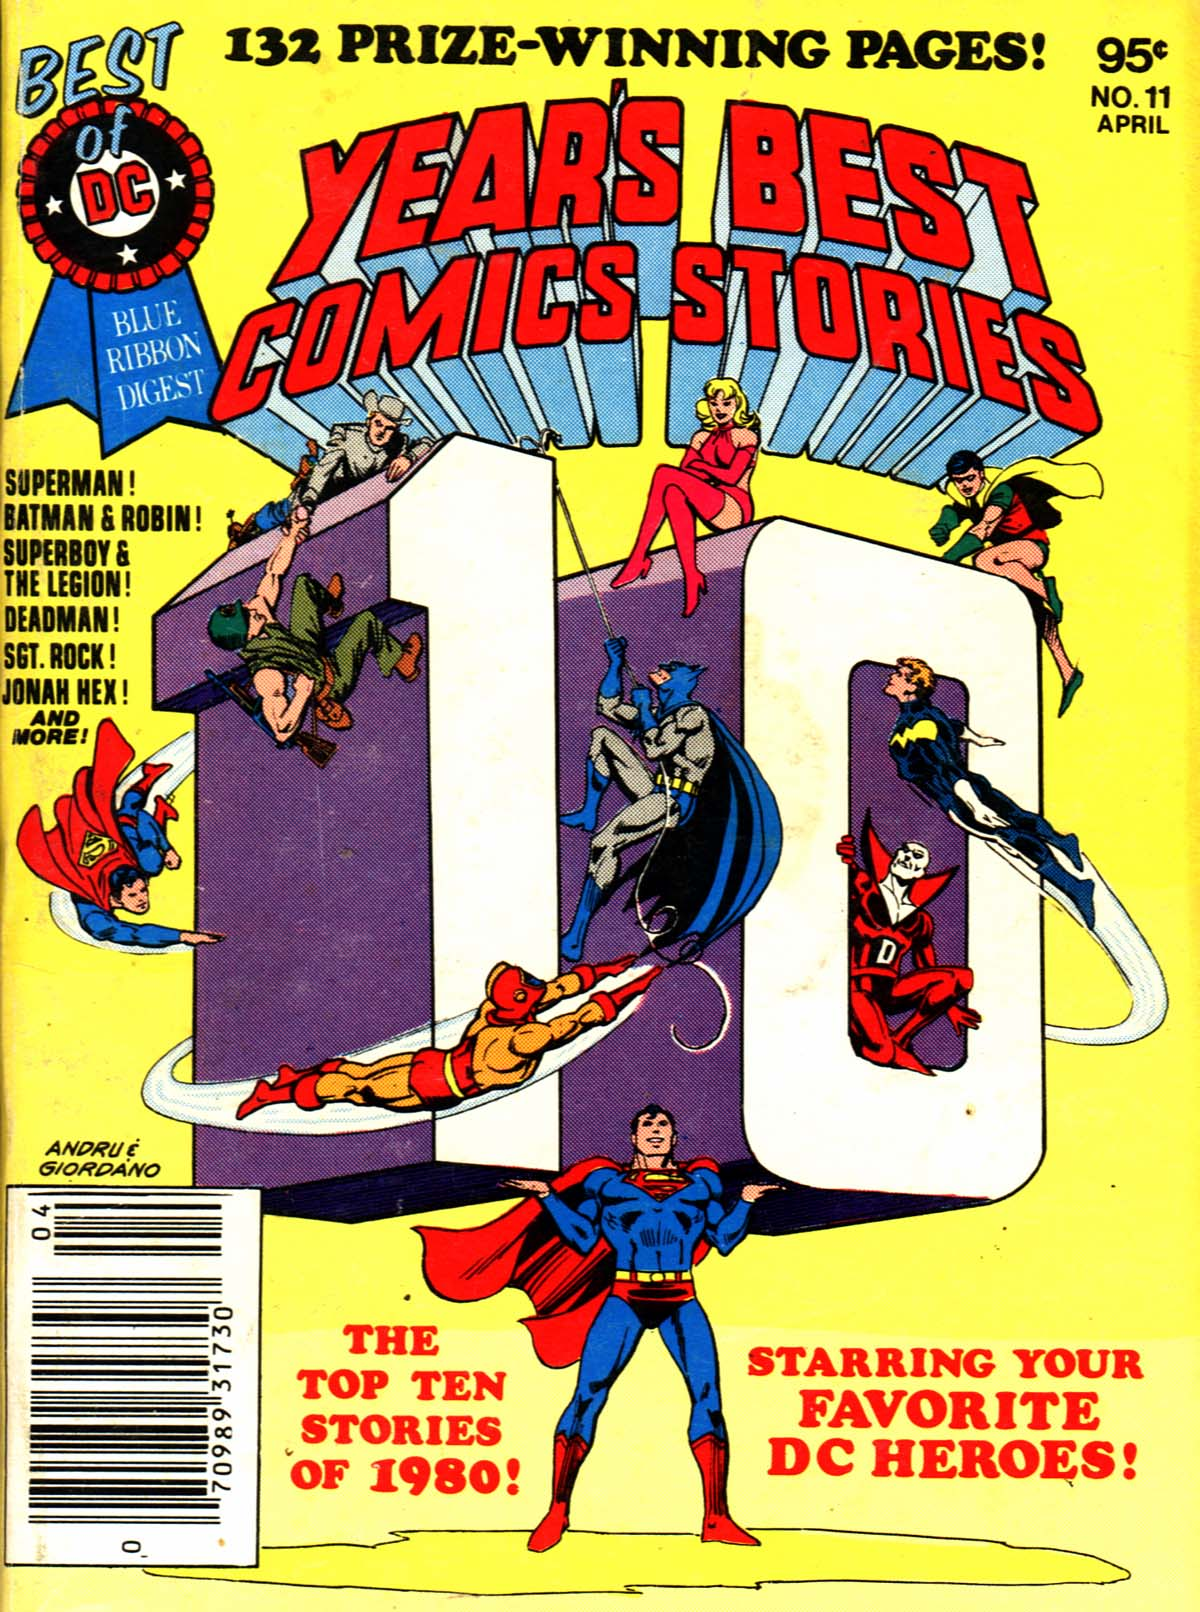 Best of DC Blue Ribbon Digest #11: Year's Best Comic Stories 1980